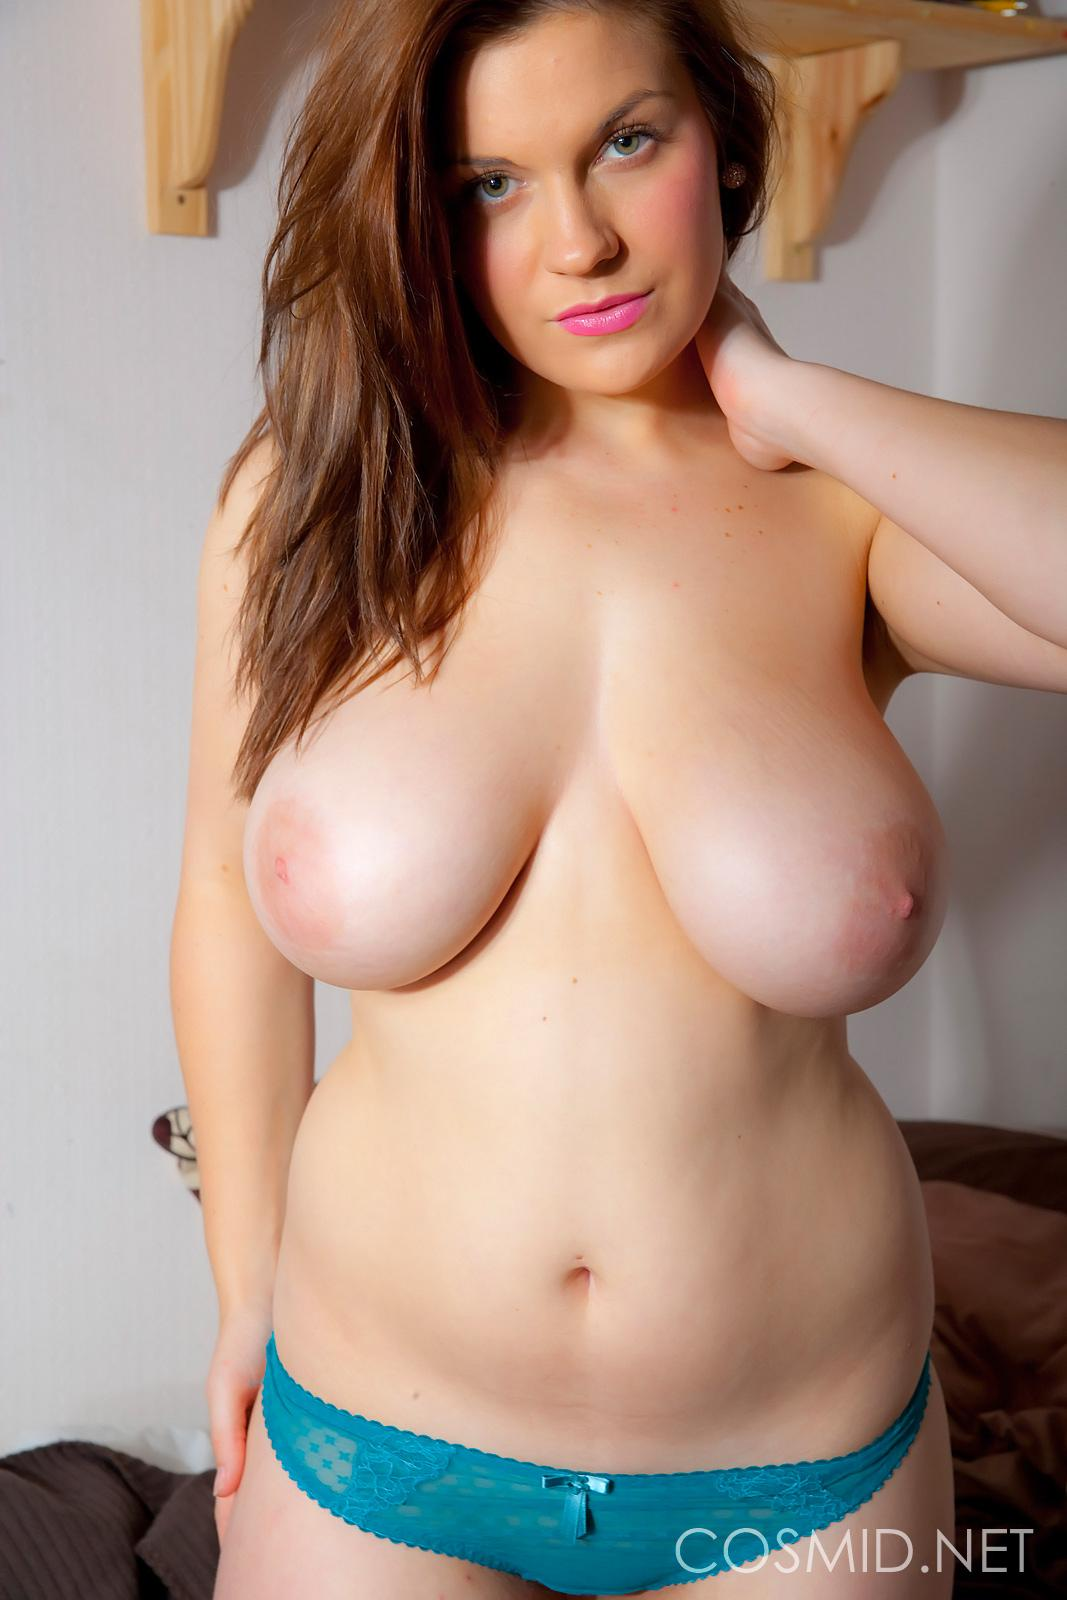 Pictures of Hannah Sharp showing her big round boobs - Coed Cherry